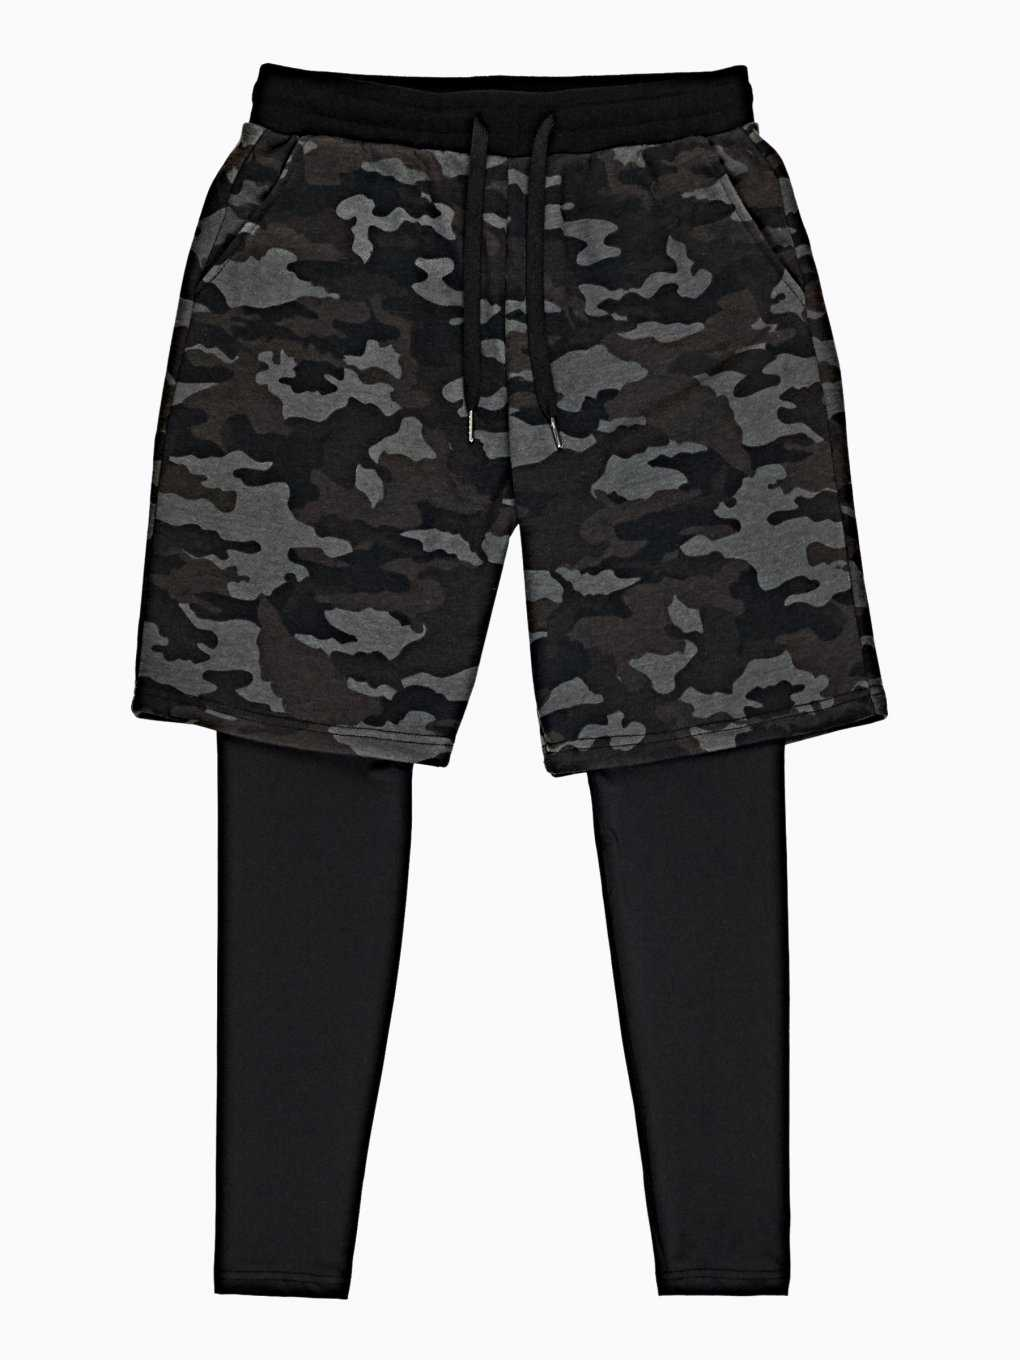 CAMO PRINT LAYERED SWEATPANTS